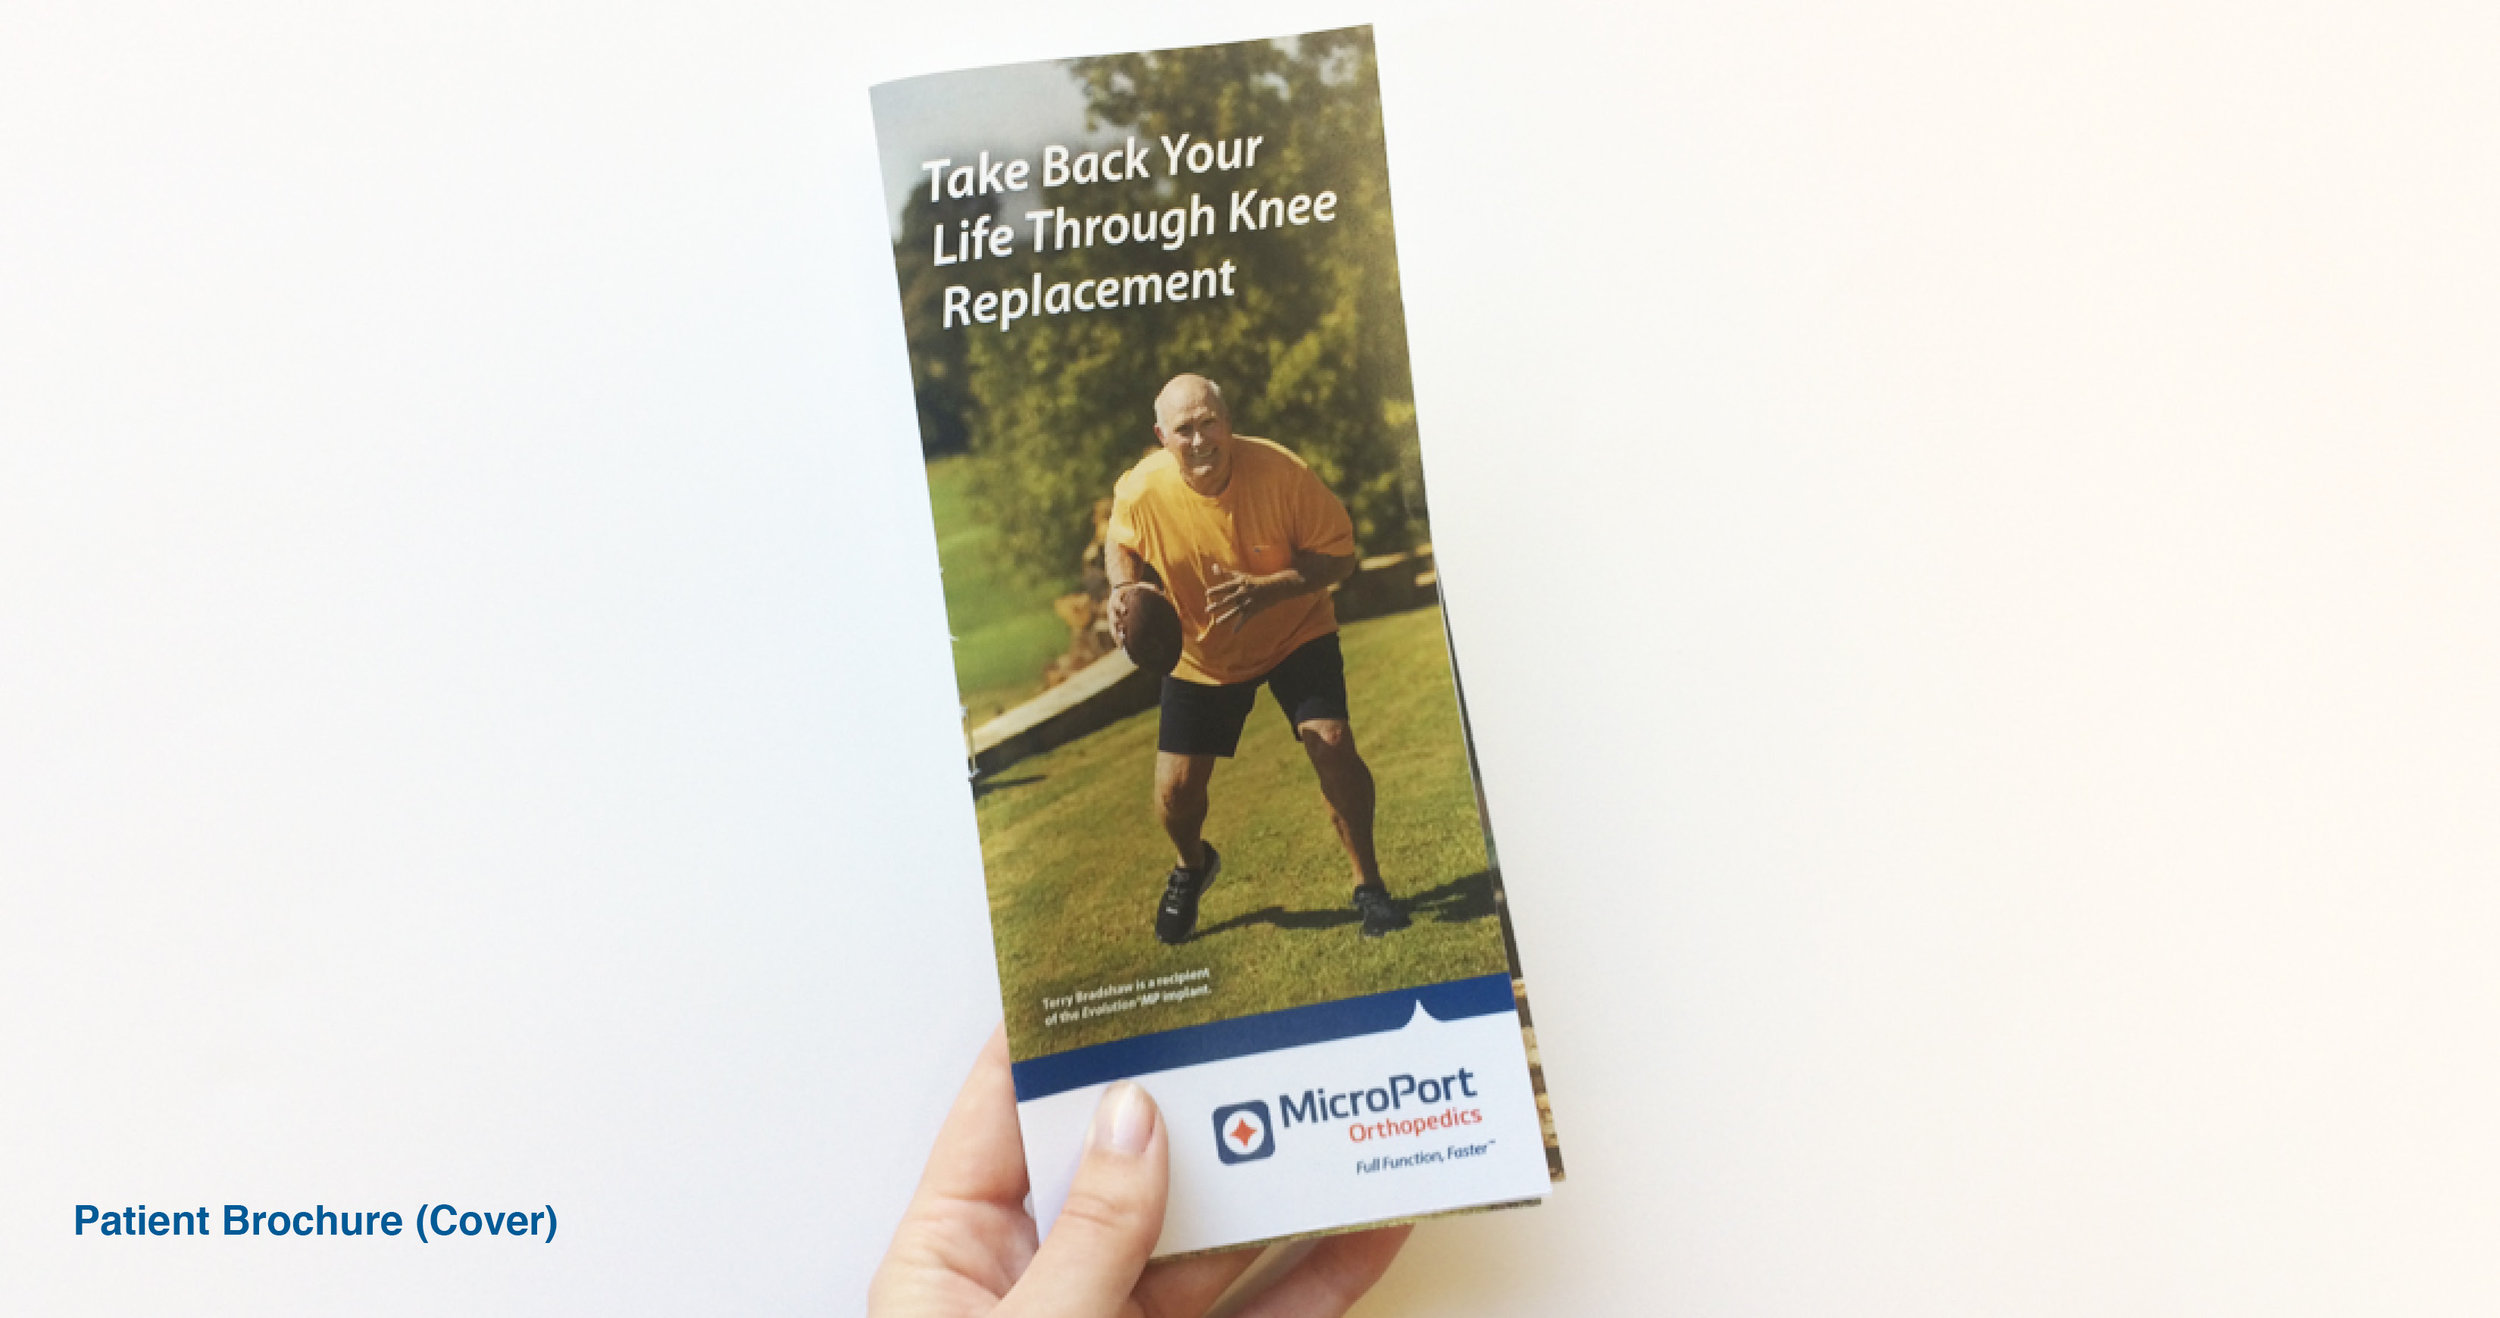 MicroPort: EvolutionMP Patient Marketing Campaign: Patient Brochure